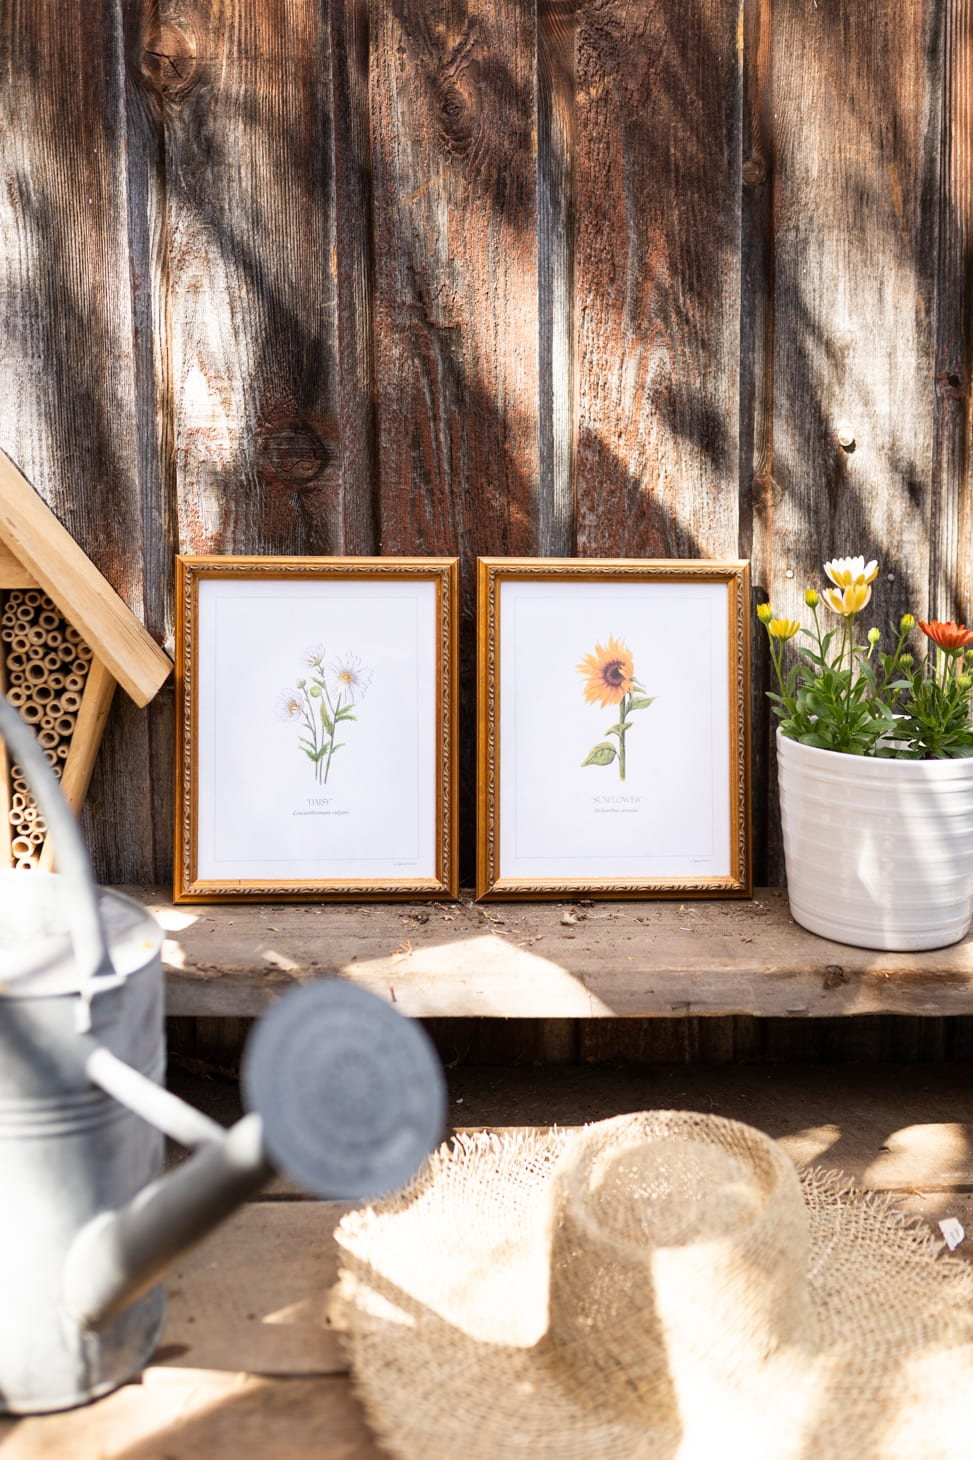 Prints Series by Kaitlin Hargreaves